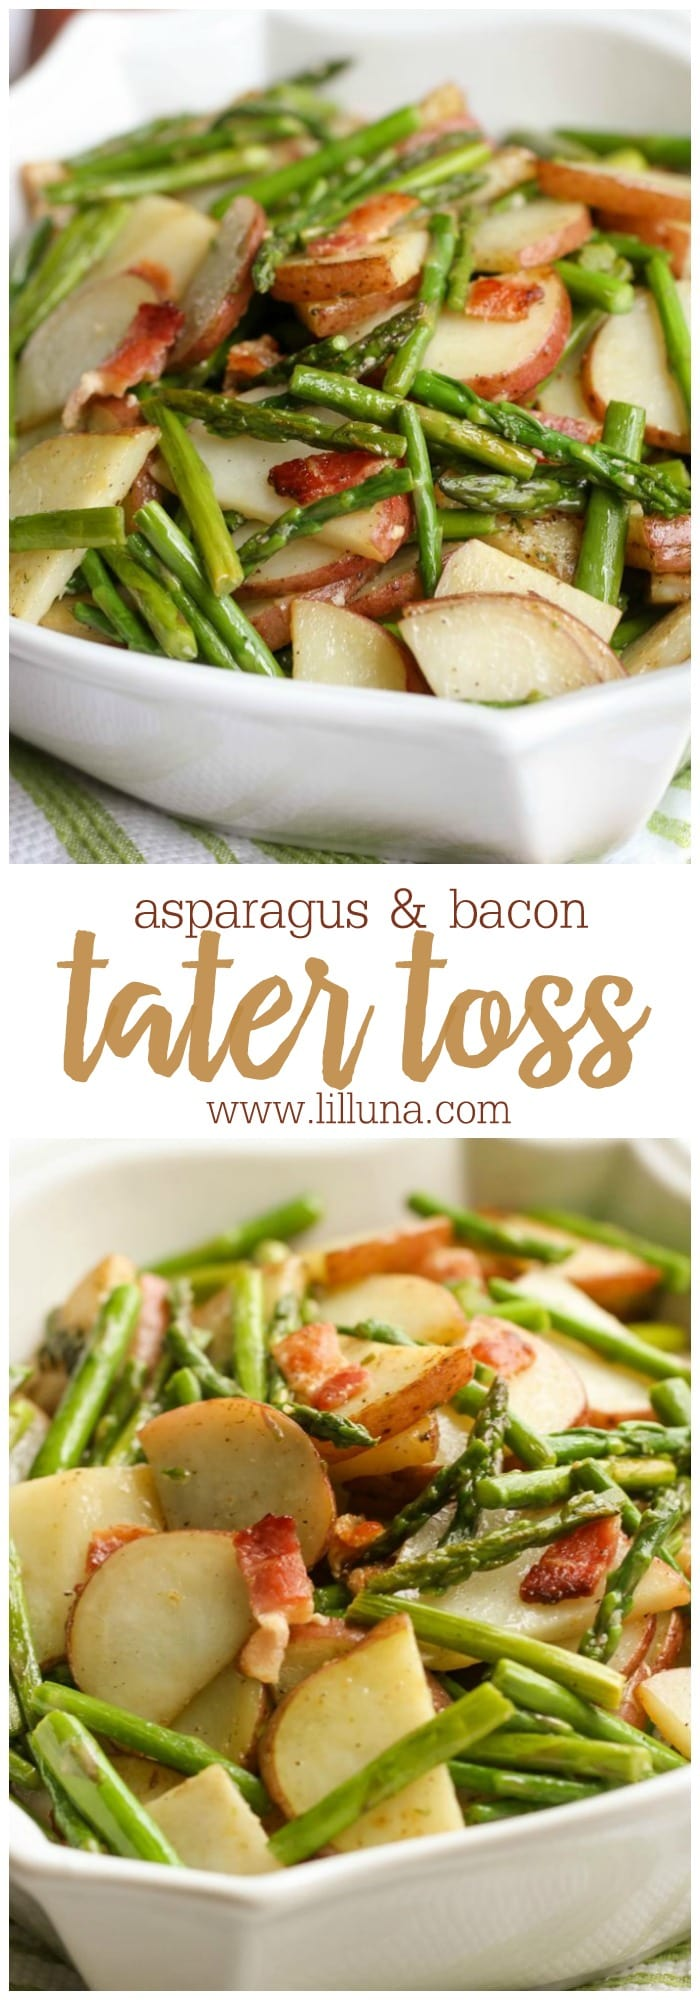 One of our favorite side dishes - Asparagus Tater Toss! This recipes has asparagus, potatoes, AND bacon! So delicious!!